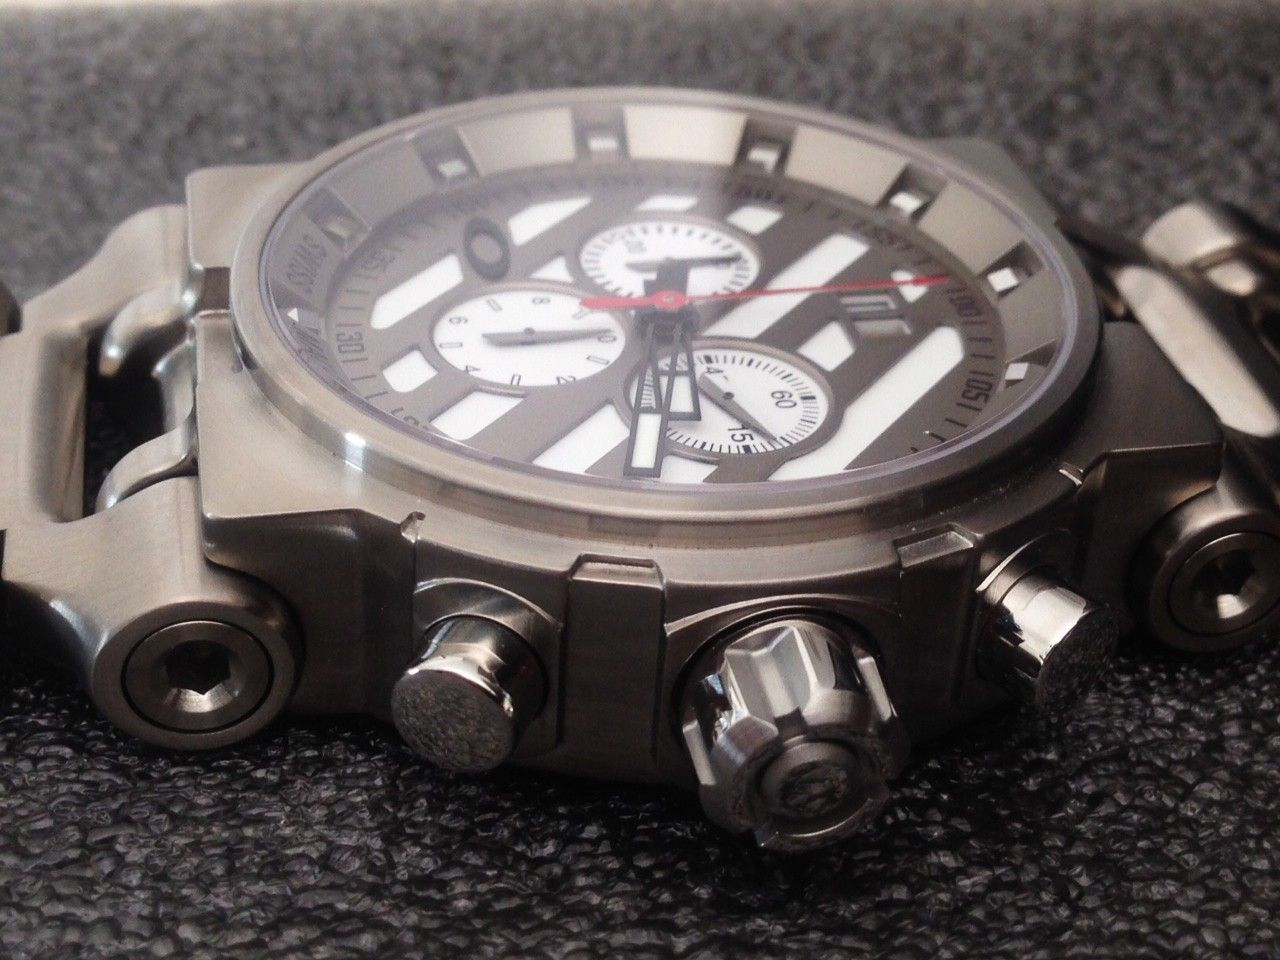 NEW IN BOX Hollow Point Titanium Watch White Dial 10-046 REDUCE PRICE 1,250 or Best Offer - 5.JPG